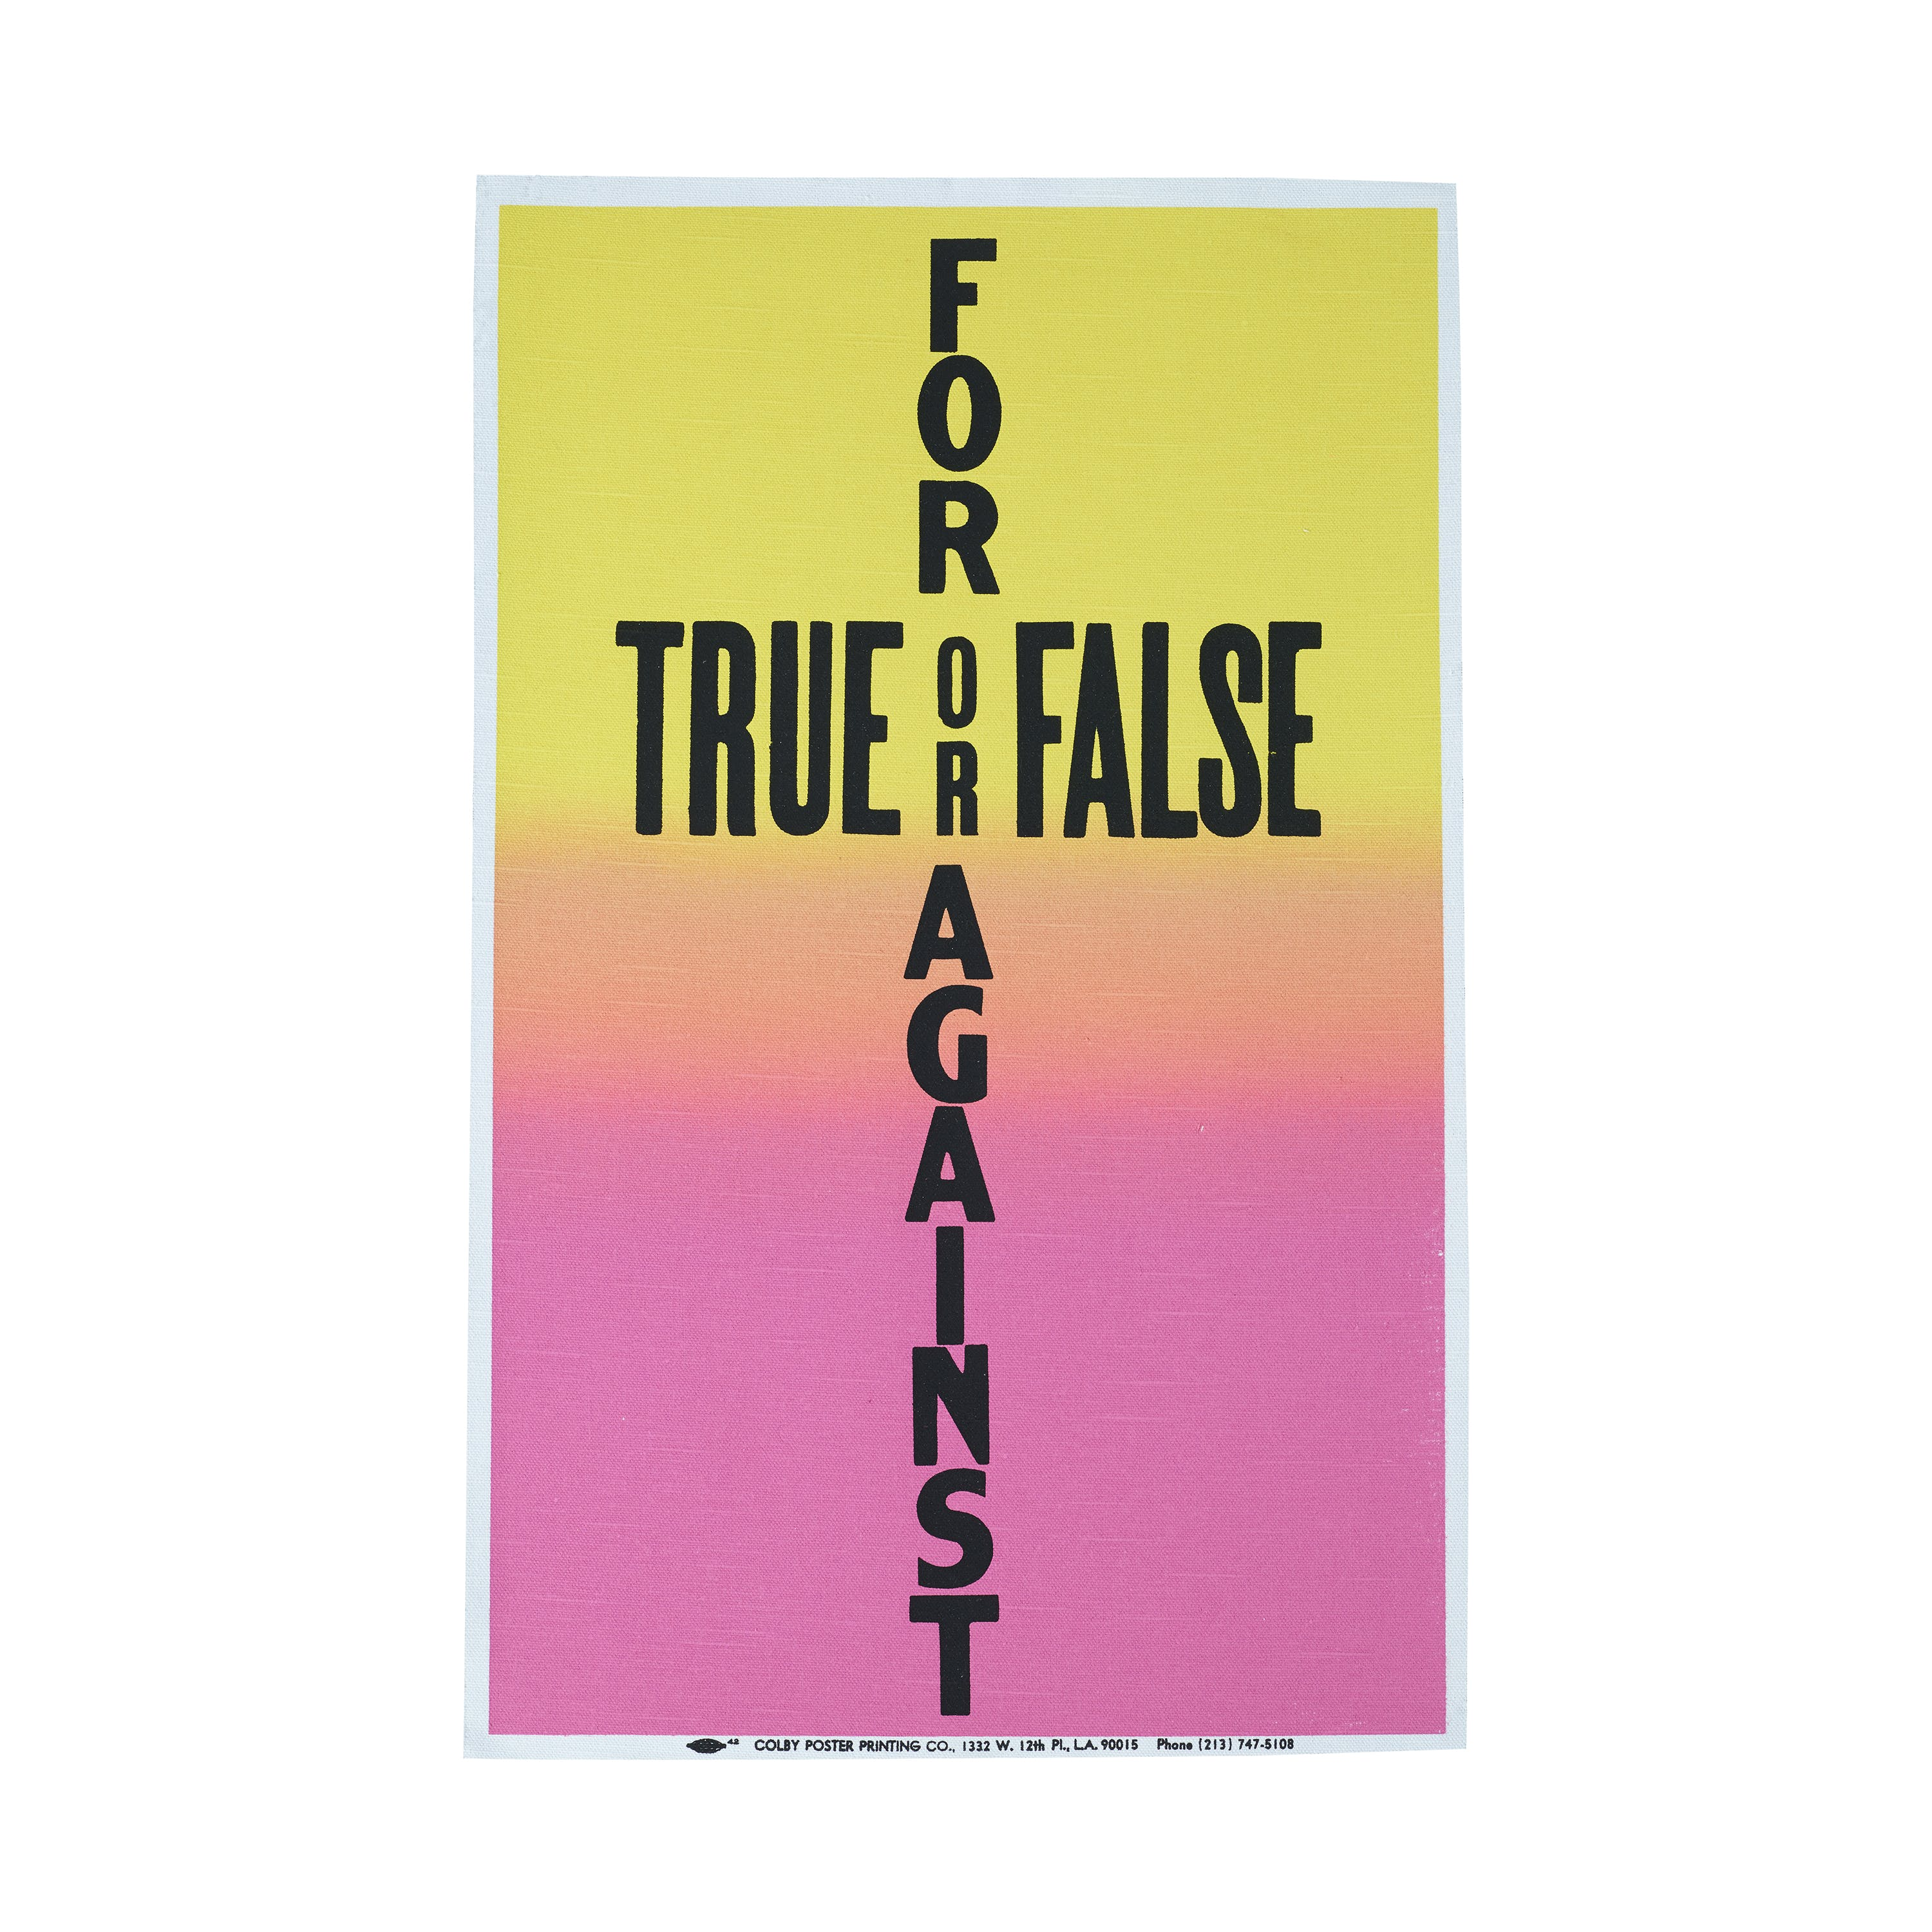 Allen Ruppersberg, Poster Object (True or False For or Against), 1988